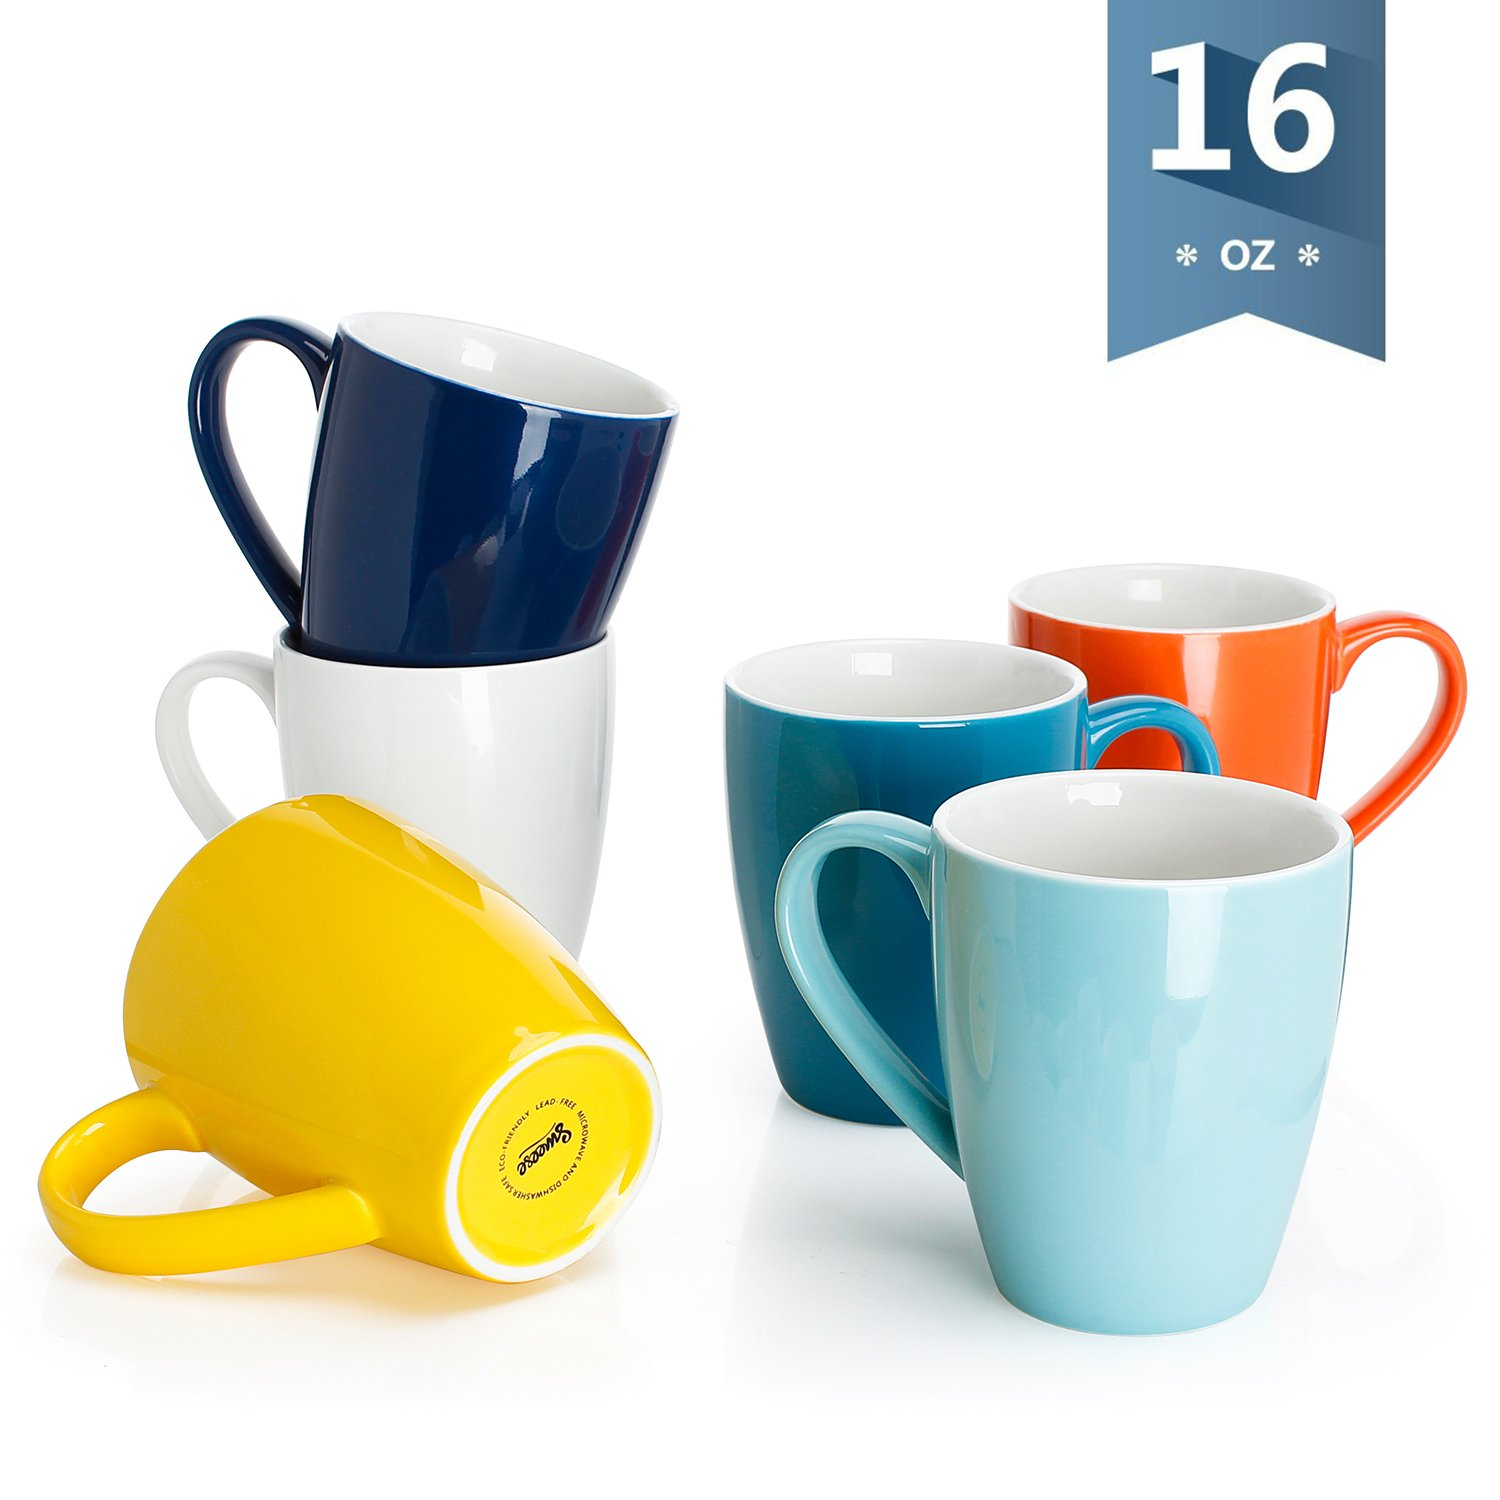 Sweese 6202 Porcelain Mugs - 16 Ounce for Coffee, Tea, Cocoa, Set of 6, Hot Assorted Colors by Sweese (Image #1)